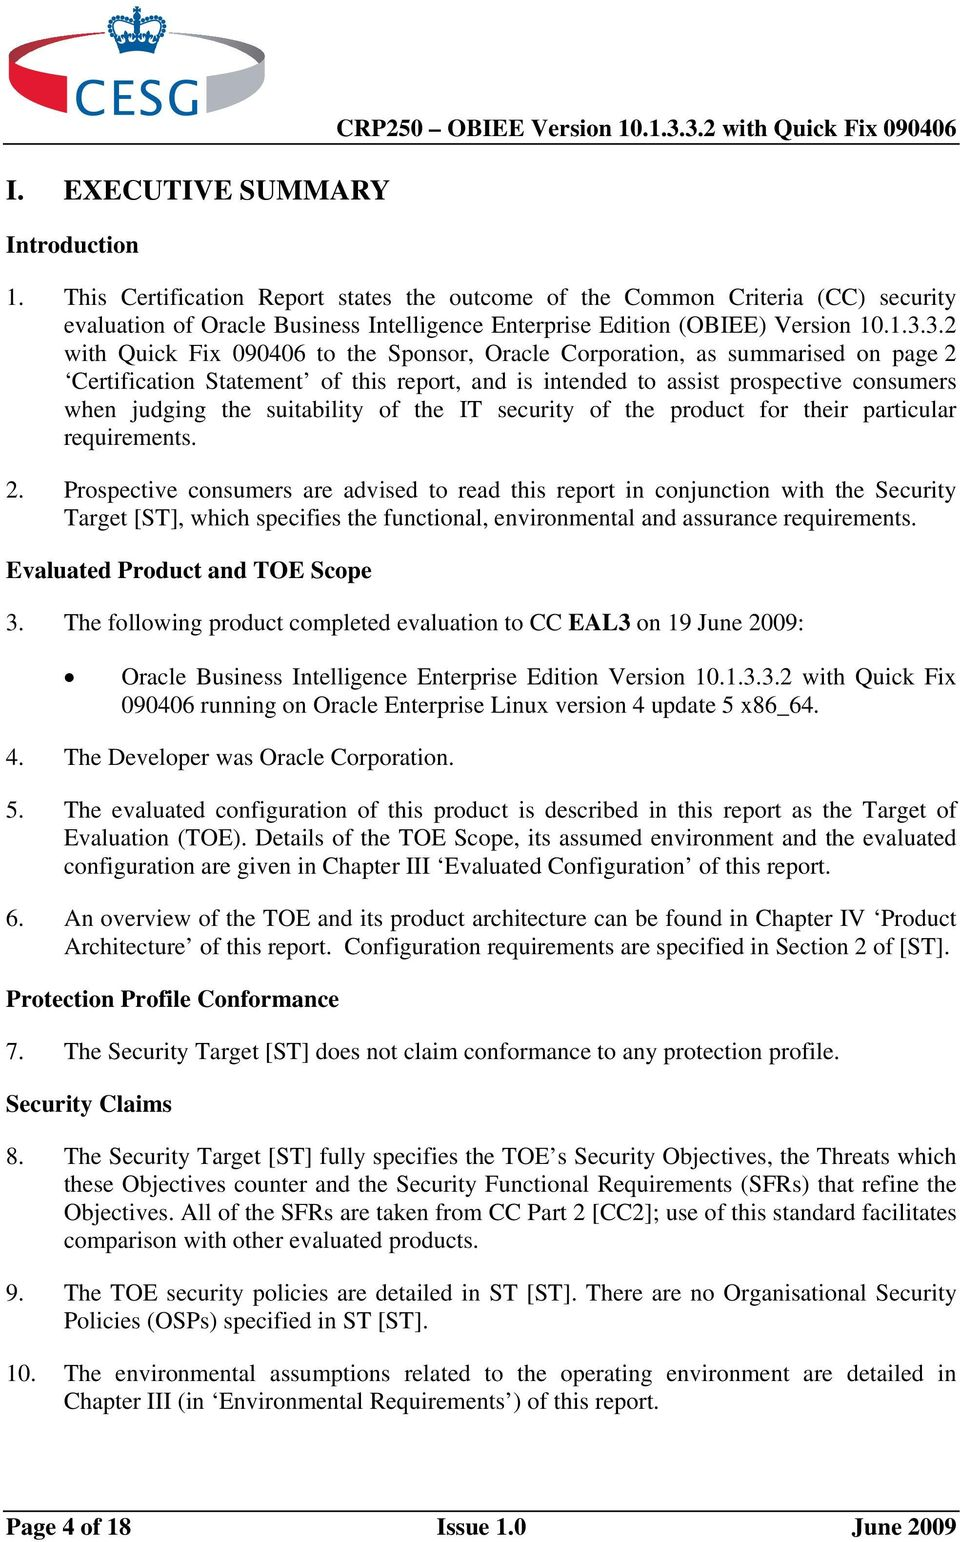 3.2 with Quick Fix 090406 to the Sponsor, Corporation, as summarised on page 2 Certification Statement of this report, and is intended to assist prospective consumers when judging the suitability of